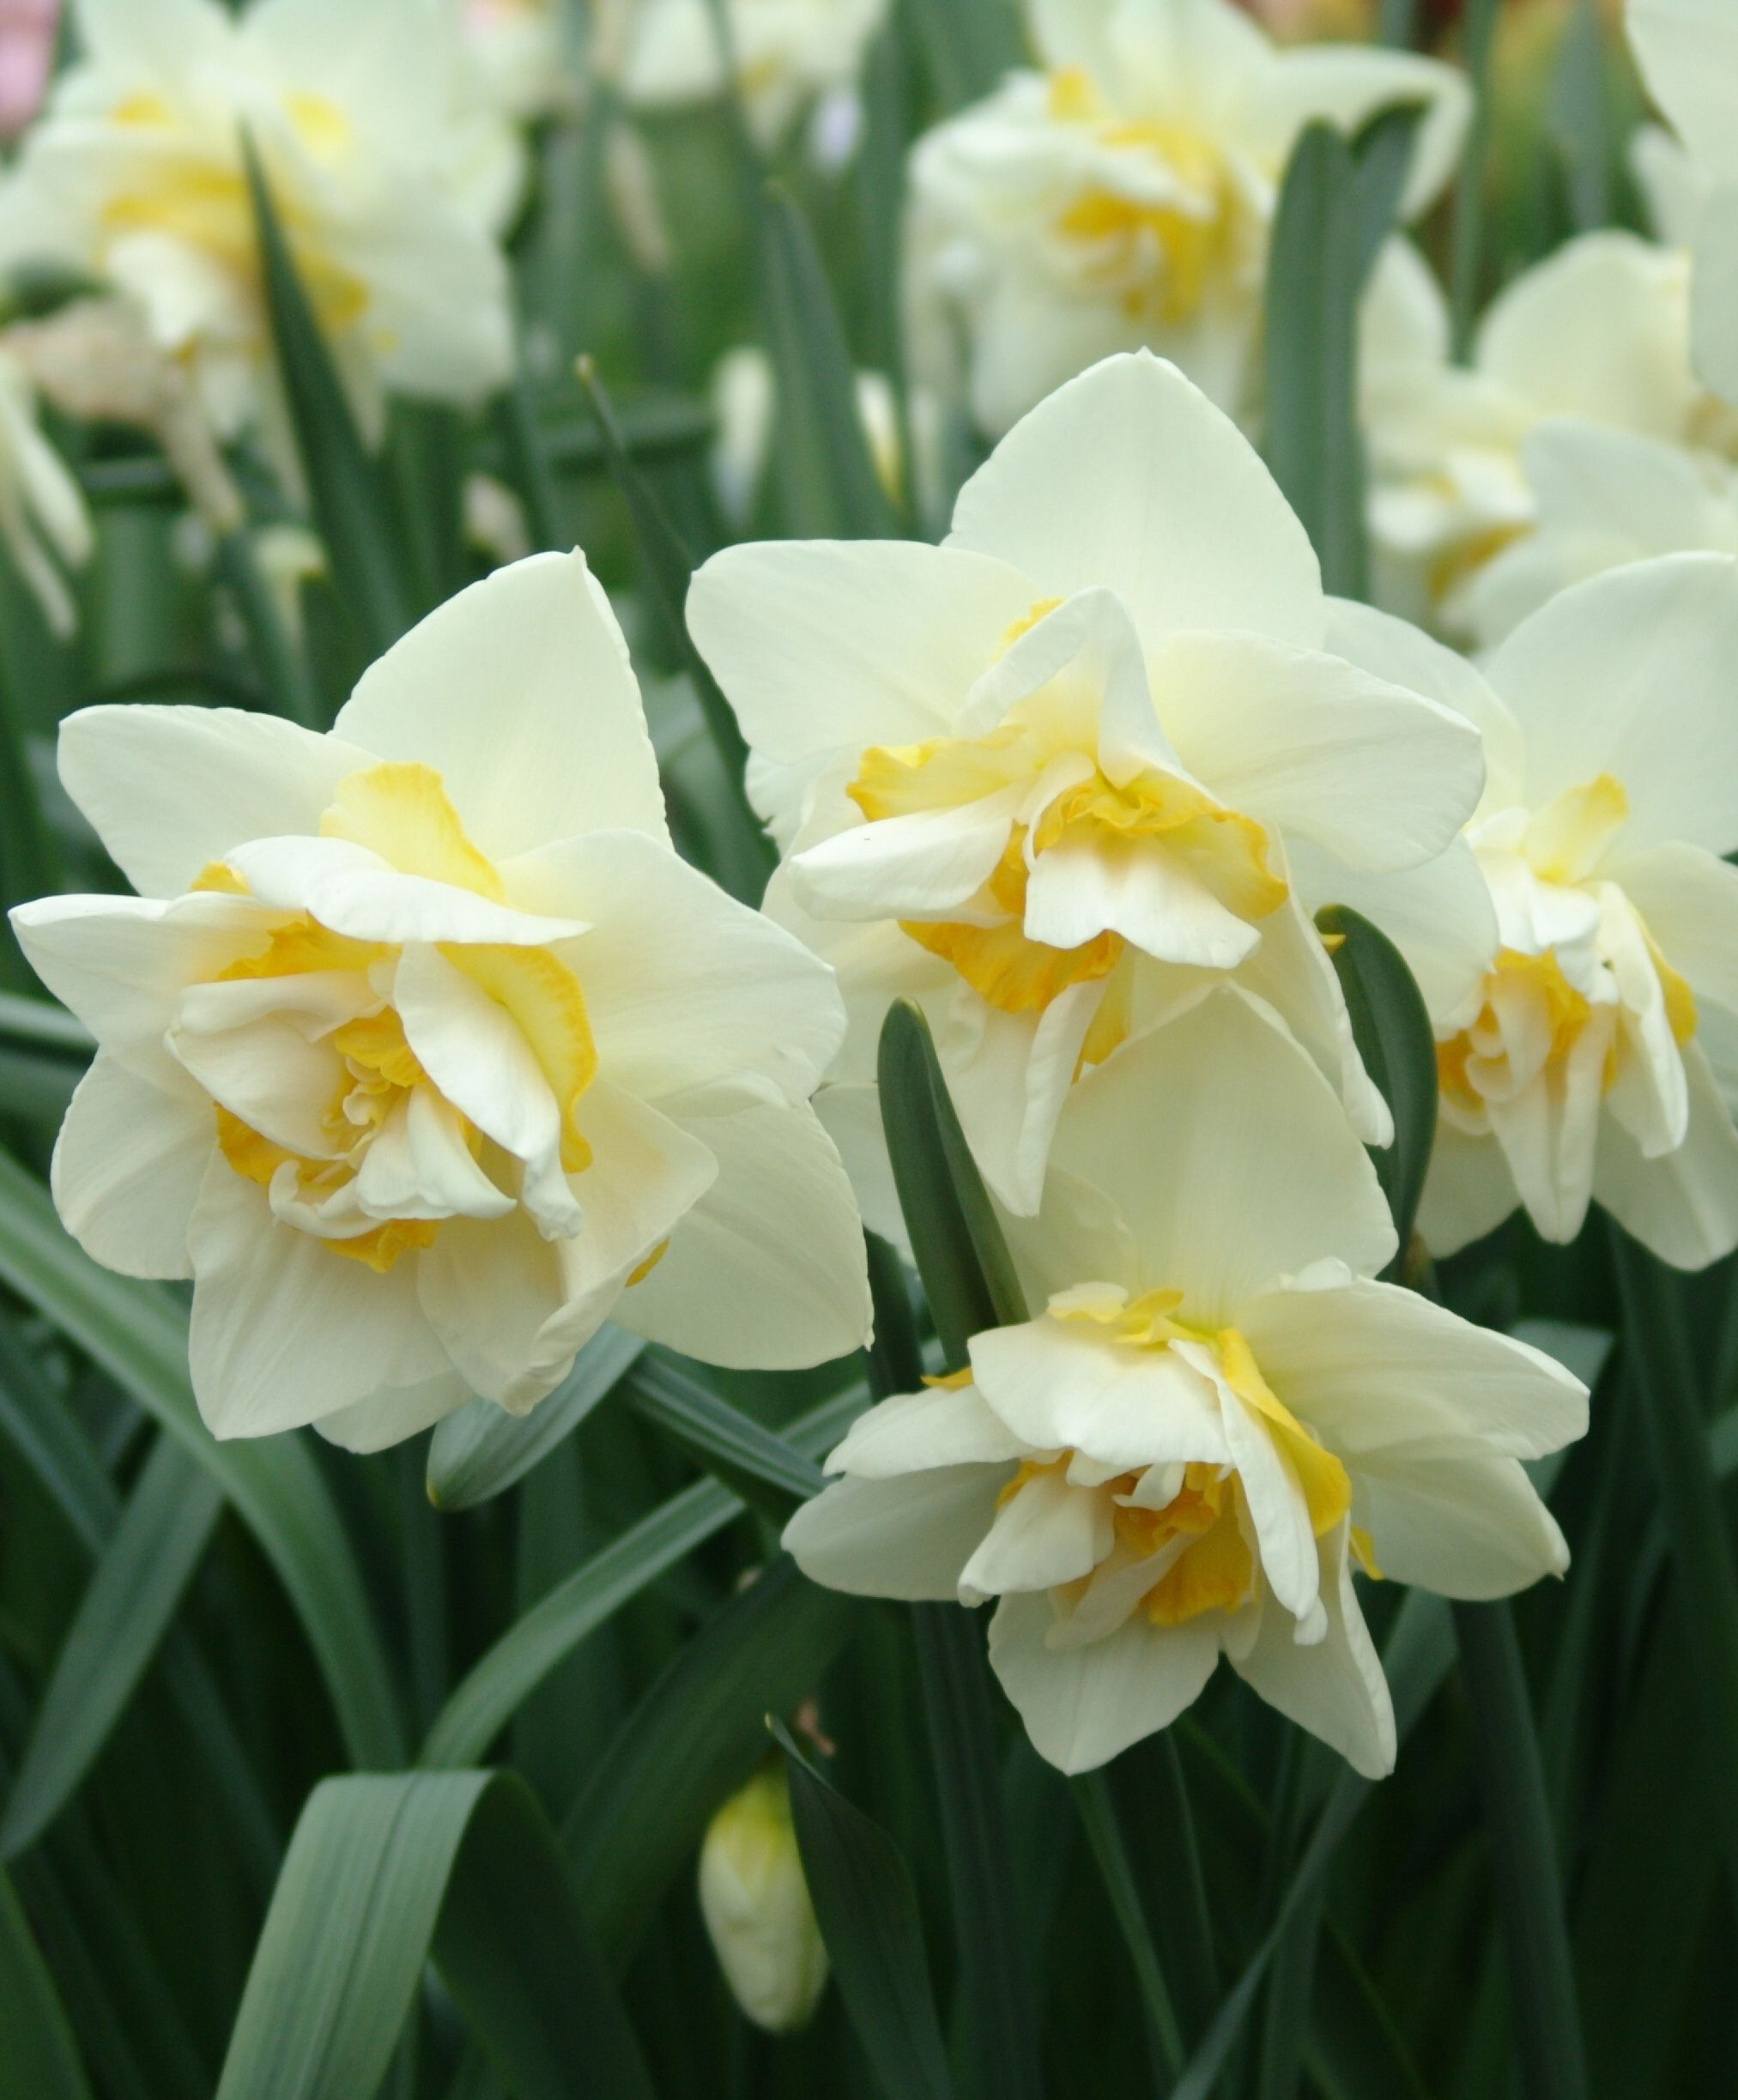 Double White Lion 8583 Selections From The John Scheepers Beauty From Bulbs Dutch Flower Bulbs Catalog Narcissus Flower Bulb Flowers Narcissus